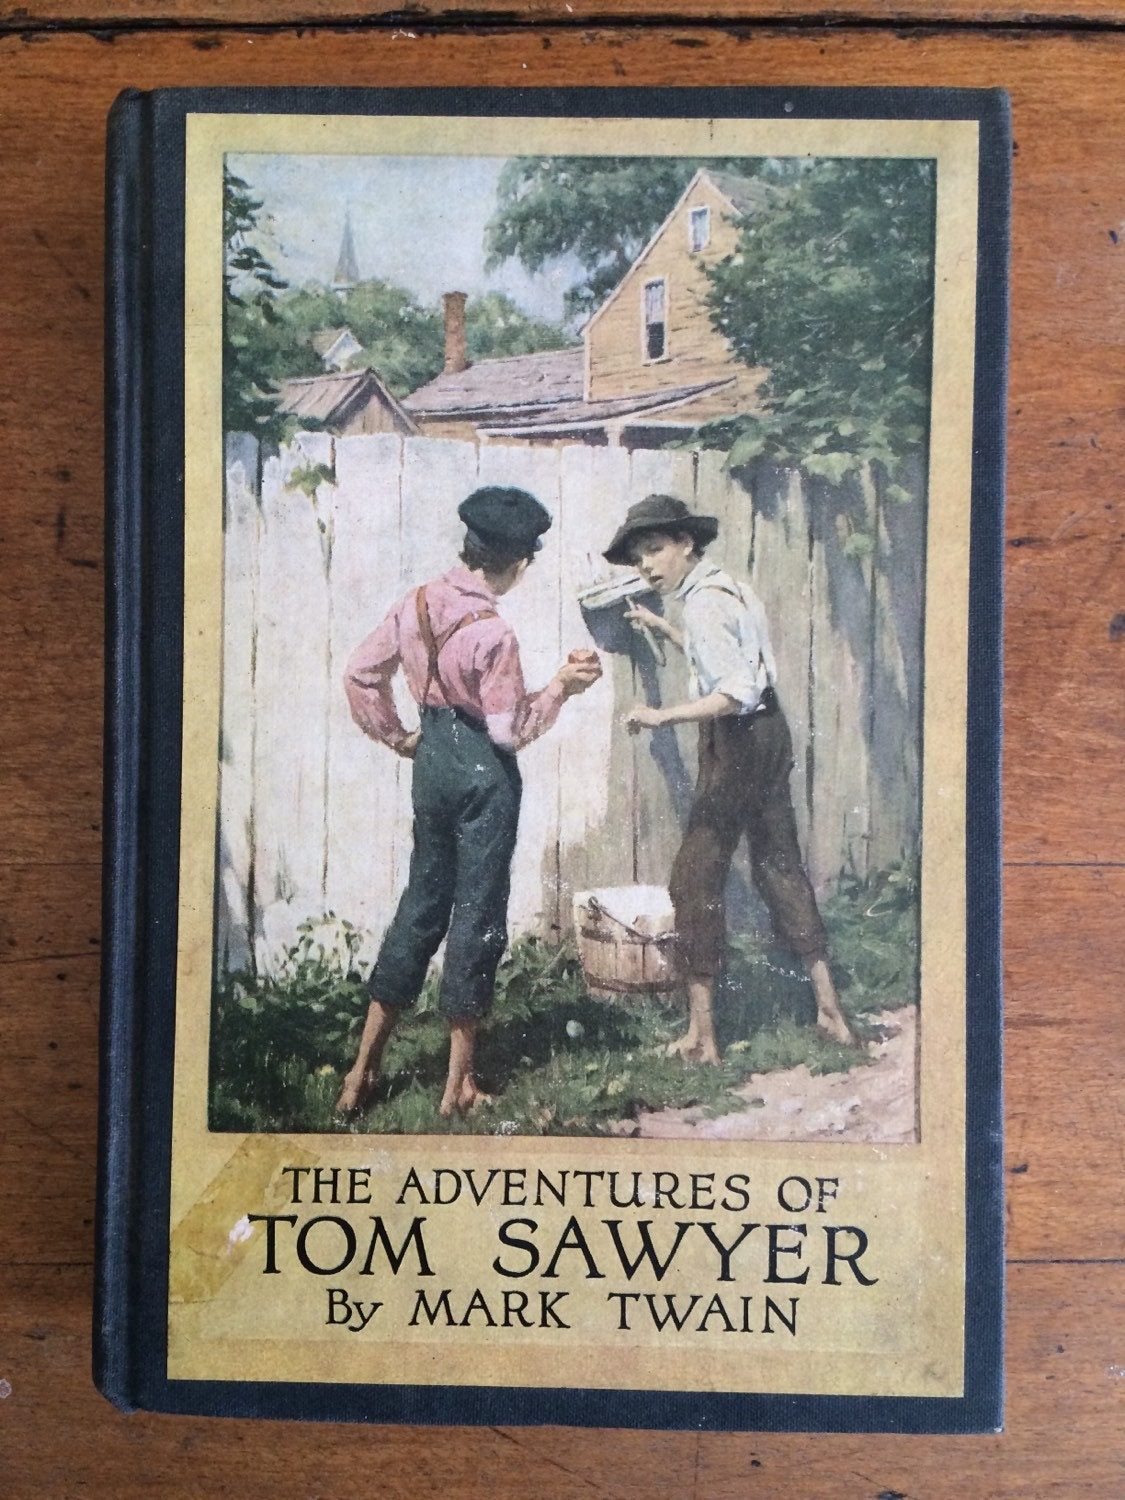 Mark Twain  Tom Sawyer  1930s childrens book  American Classic  Huckleberry Finn  1800s novel